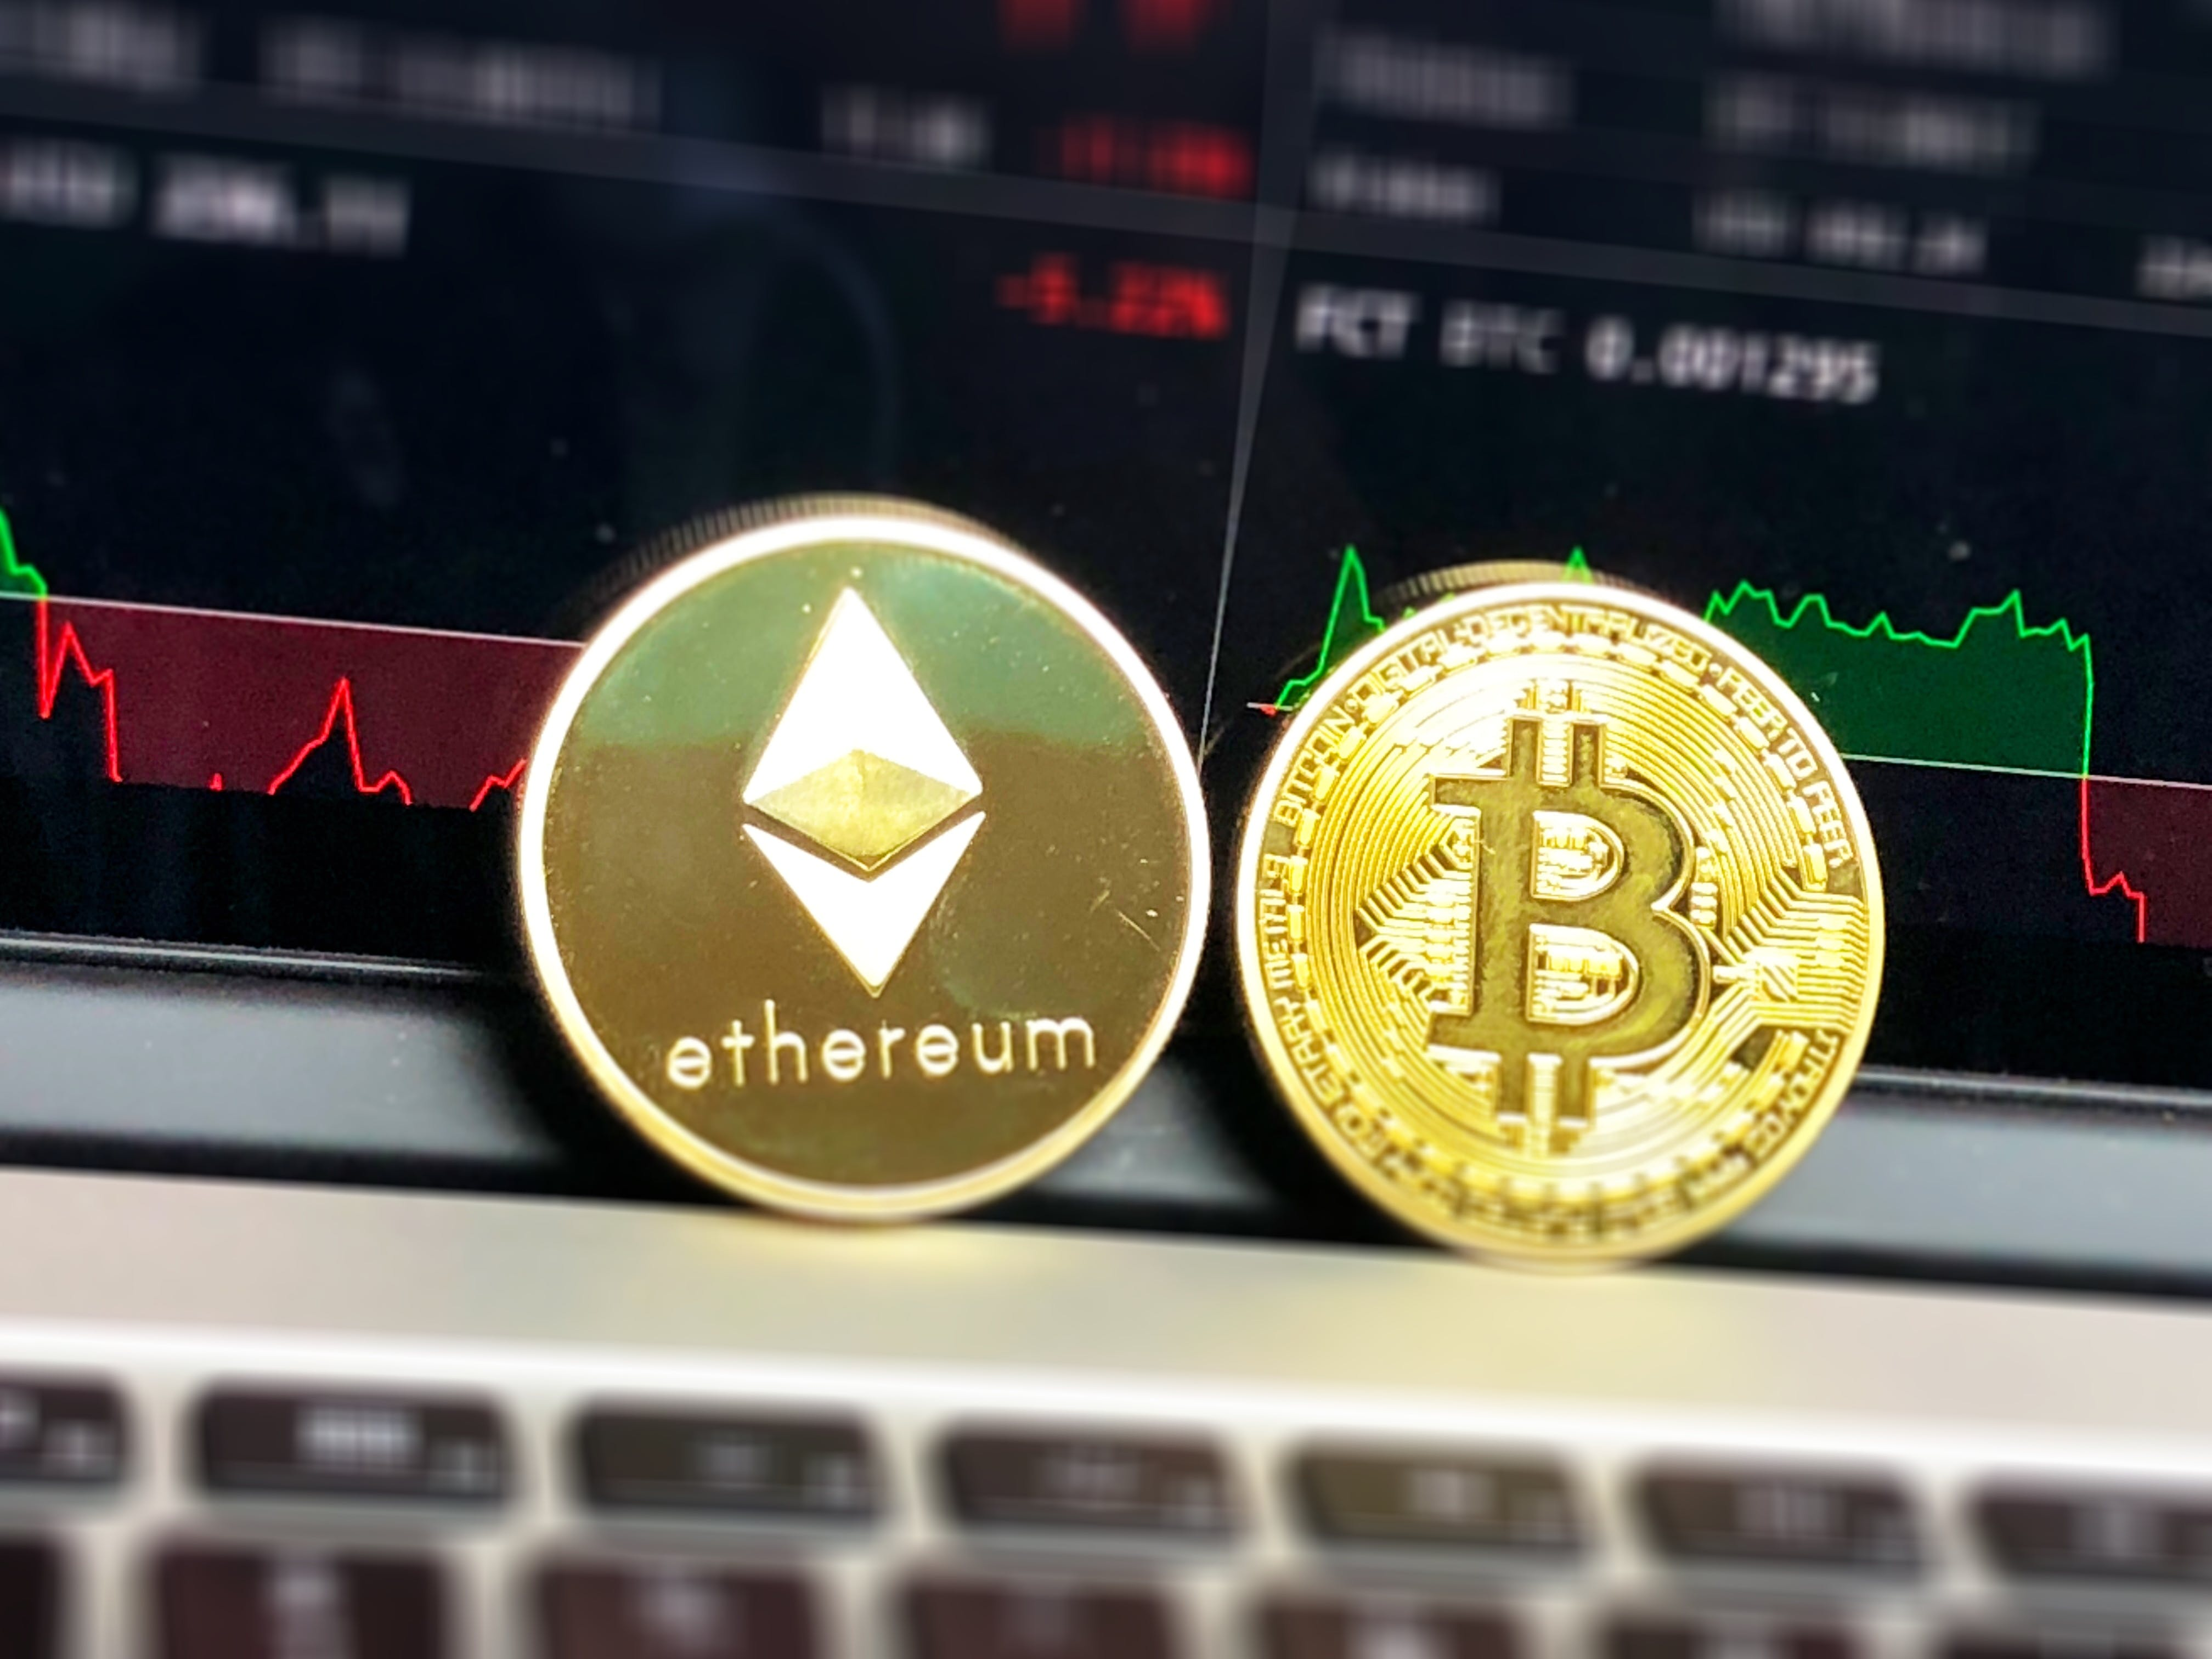 Free stock photo of currency, Altcoin, Etherum or bitcoin